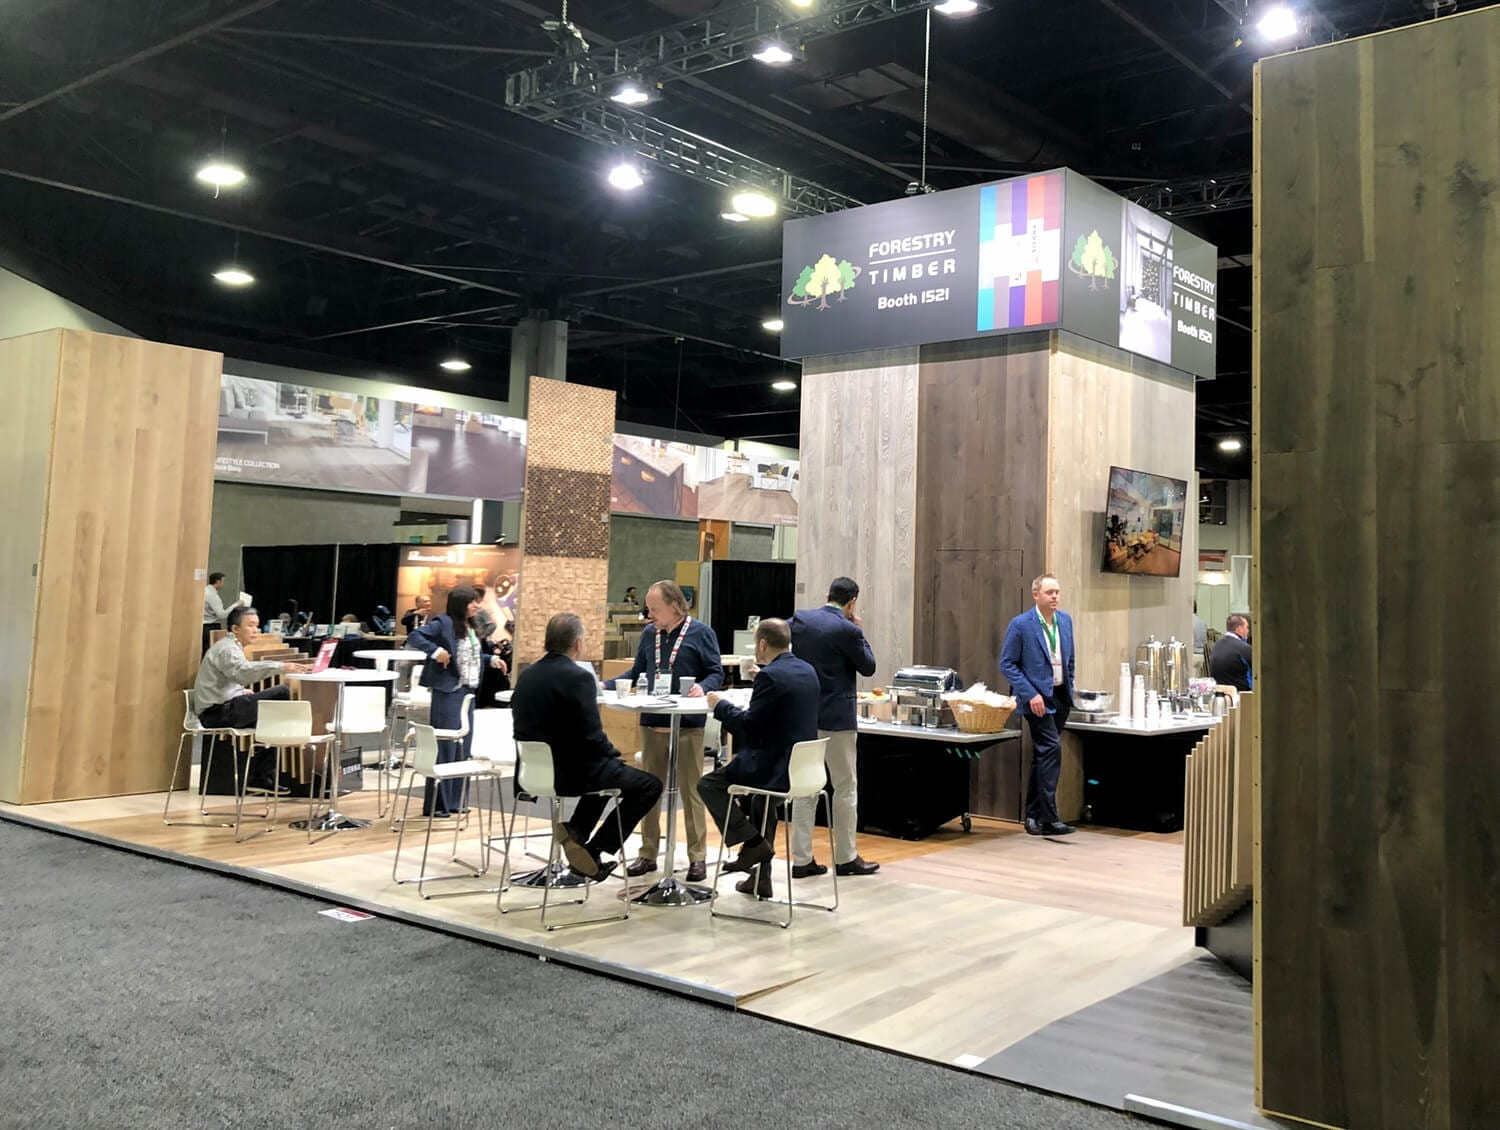 Domotex Exhibition Atlanta 2019 Forestry Timber-13